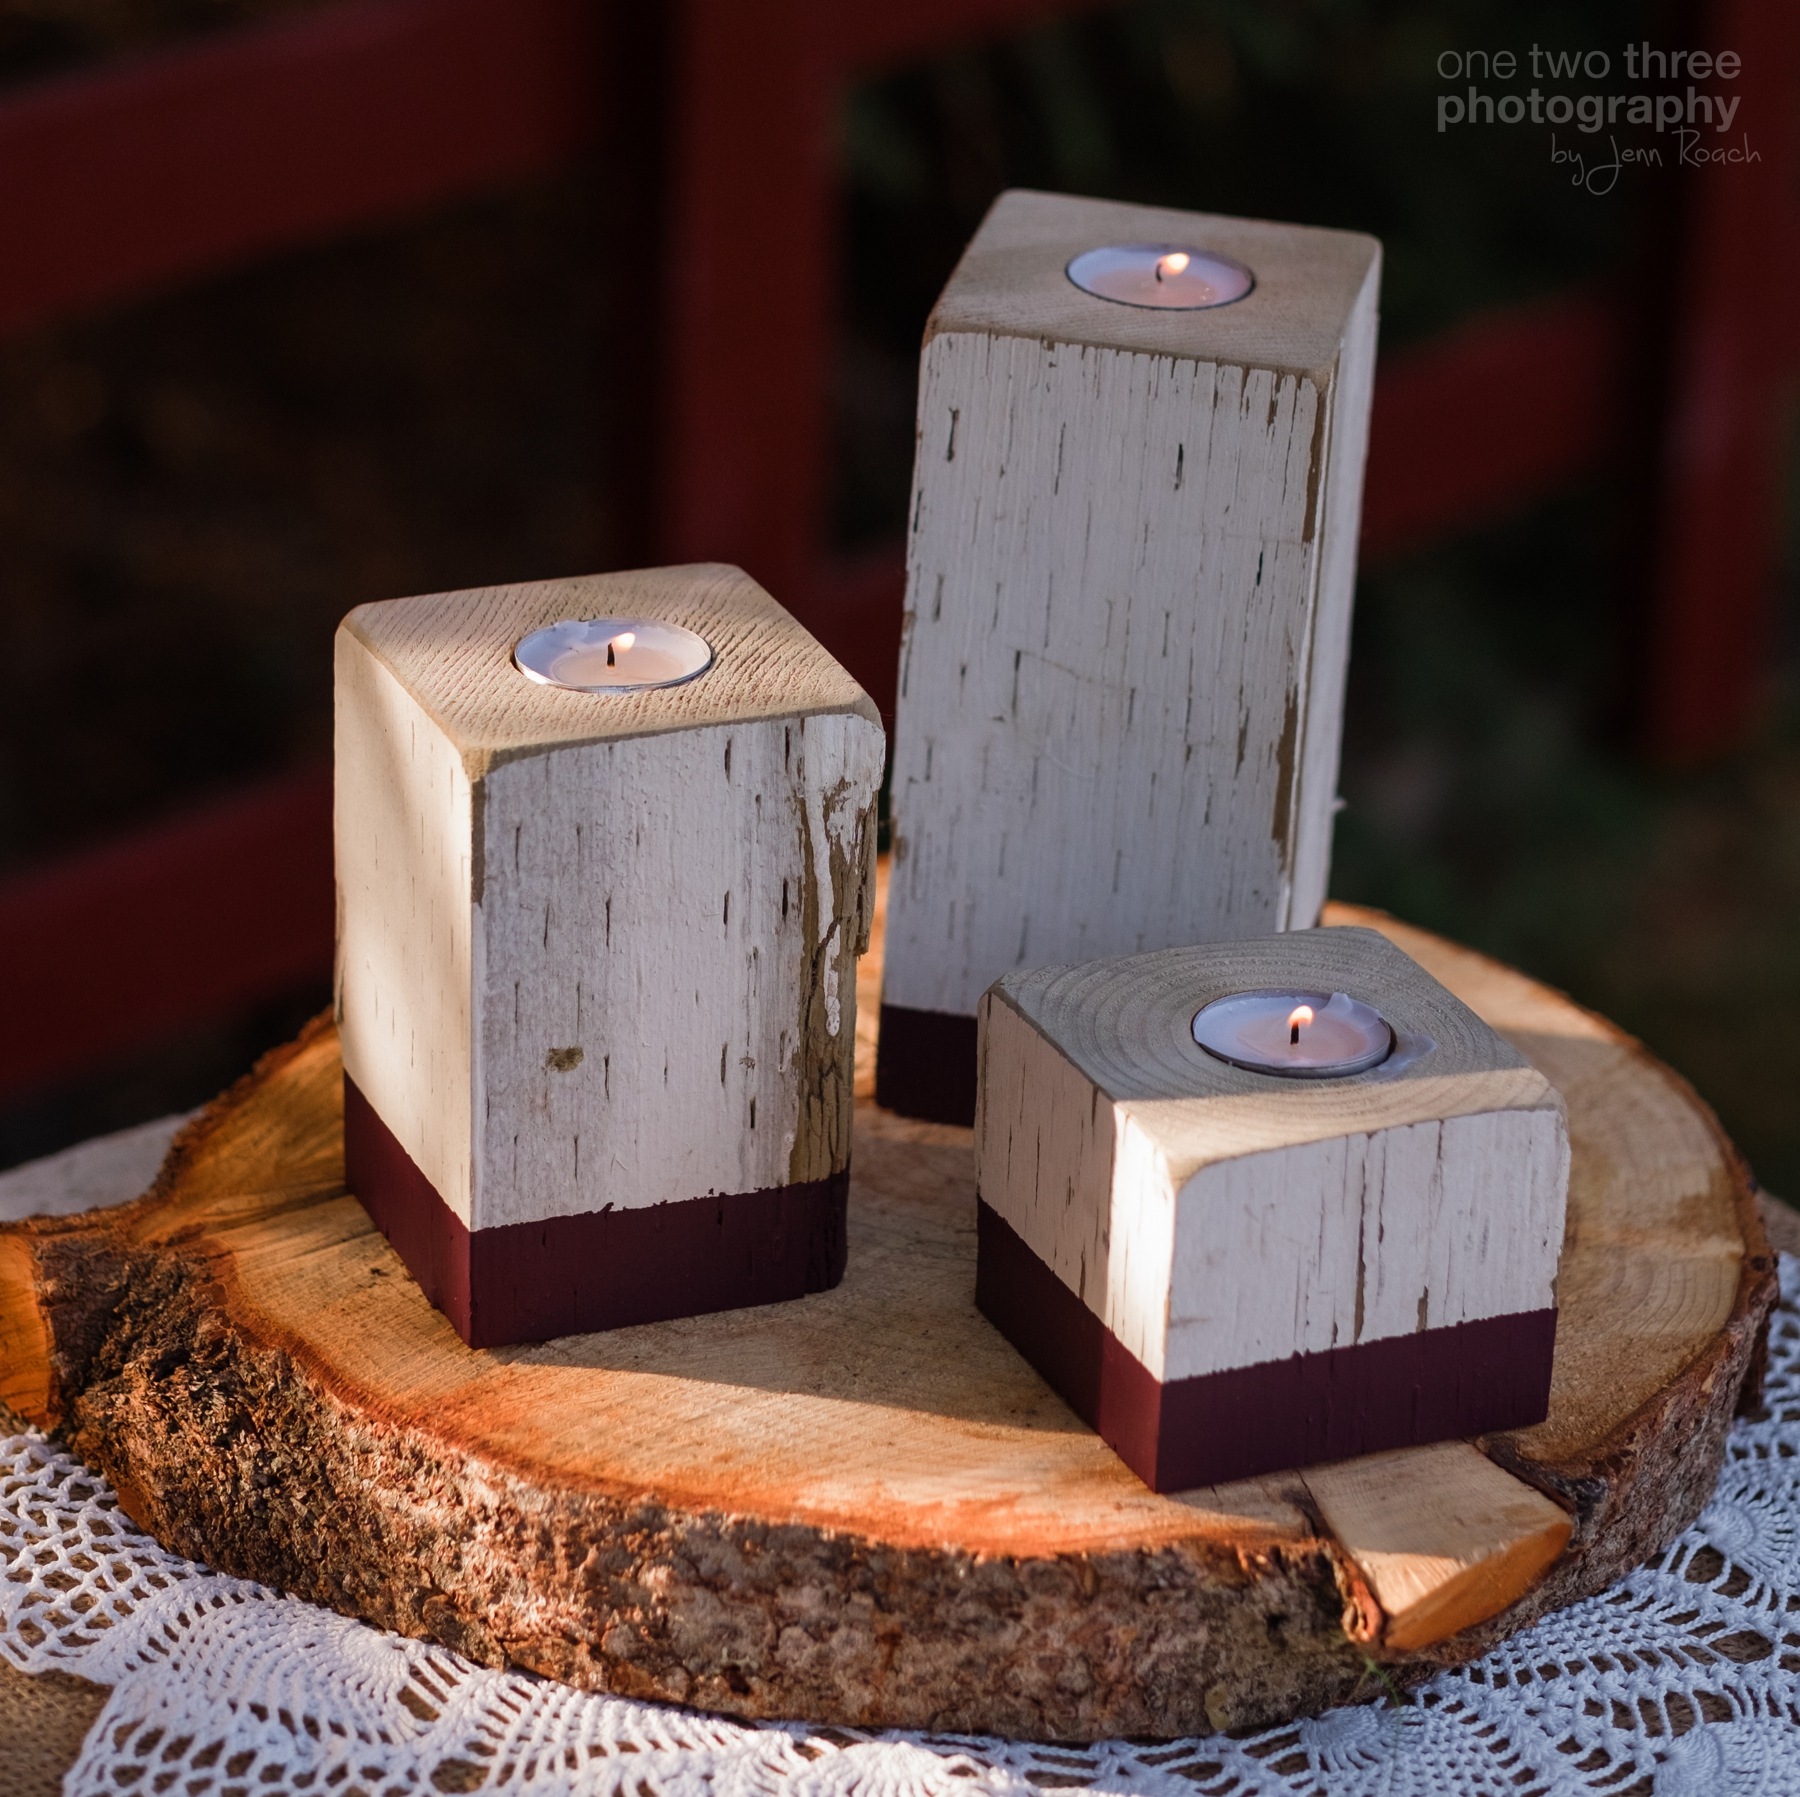 Rustic recycled and reclaimed tea light candleholders